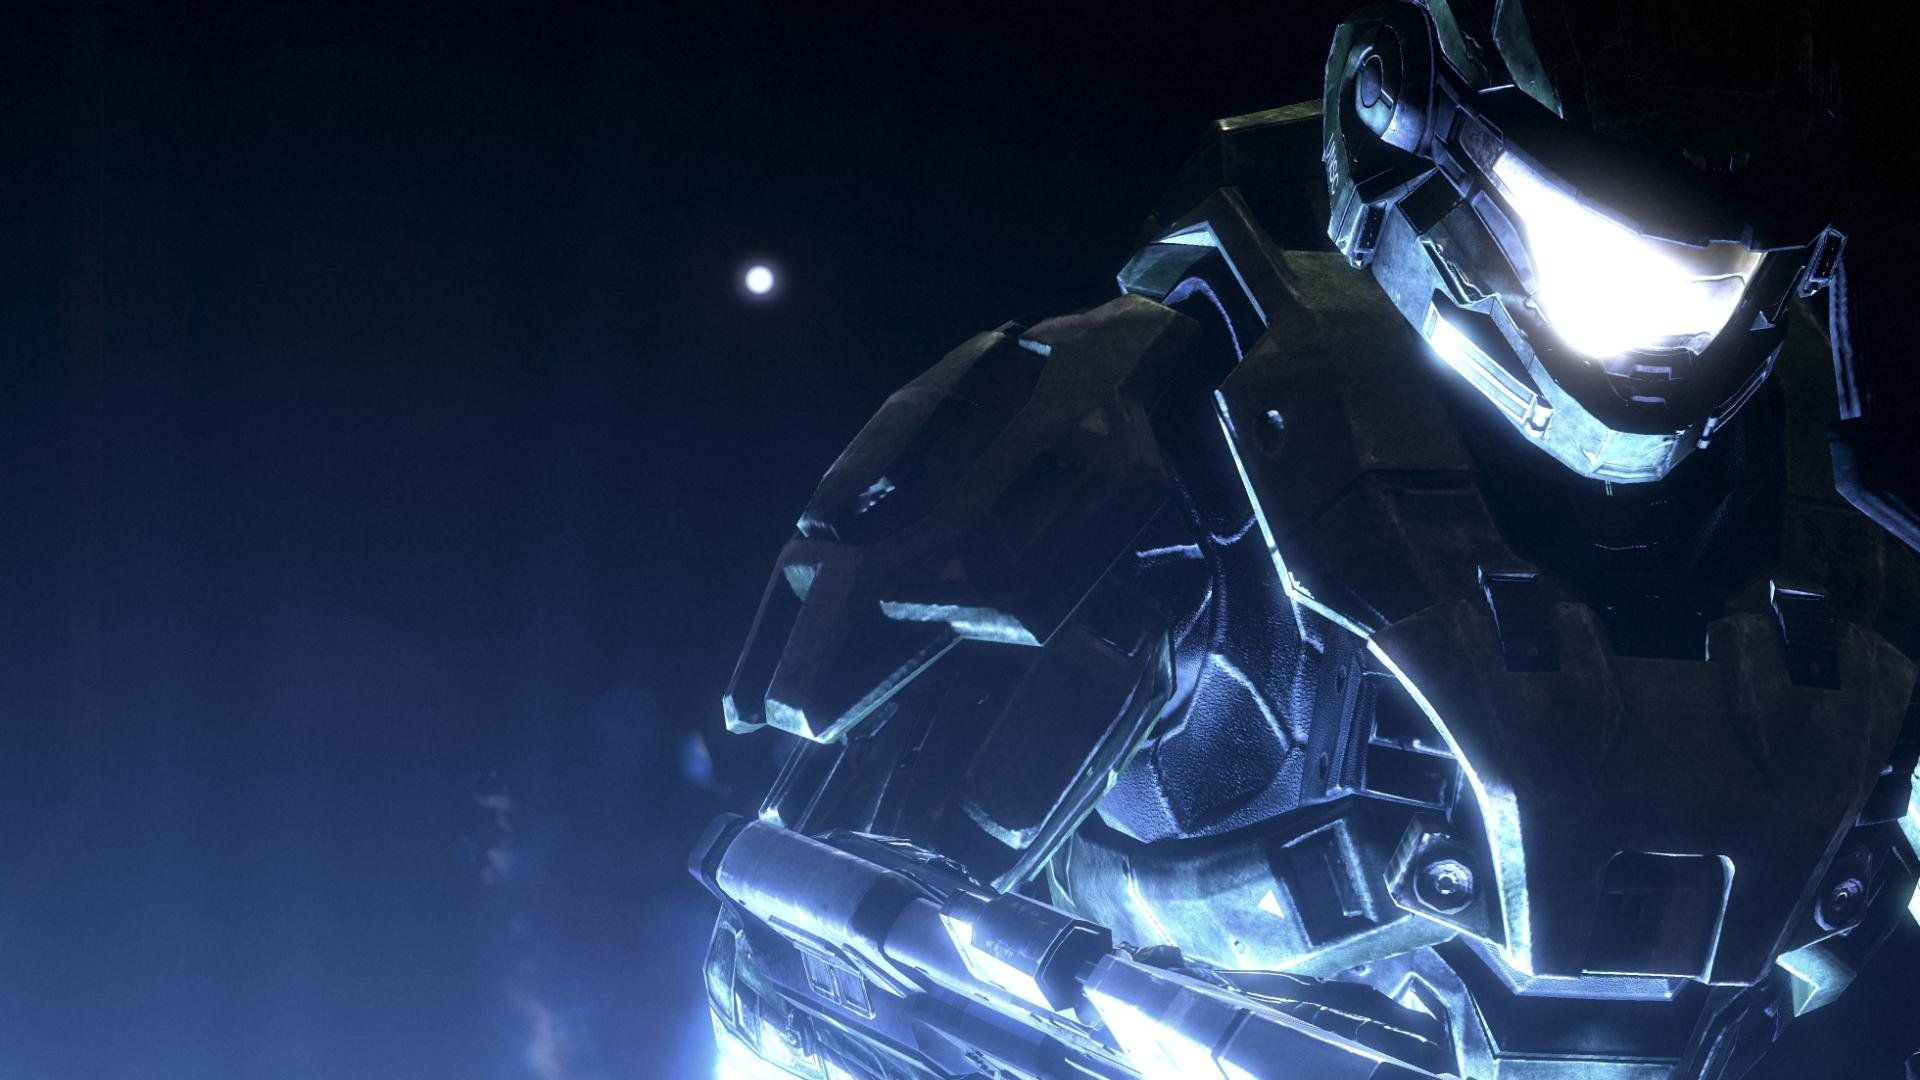 White And Blue Gaming Wallpapers Top Free White And Blue Gaming Backgrounds Wallpaperaccess